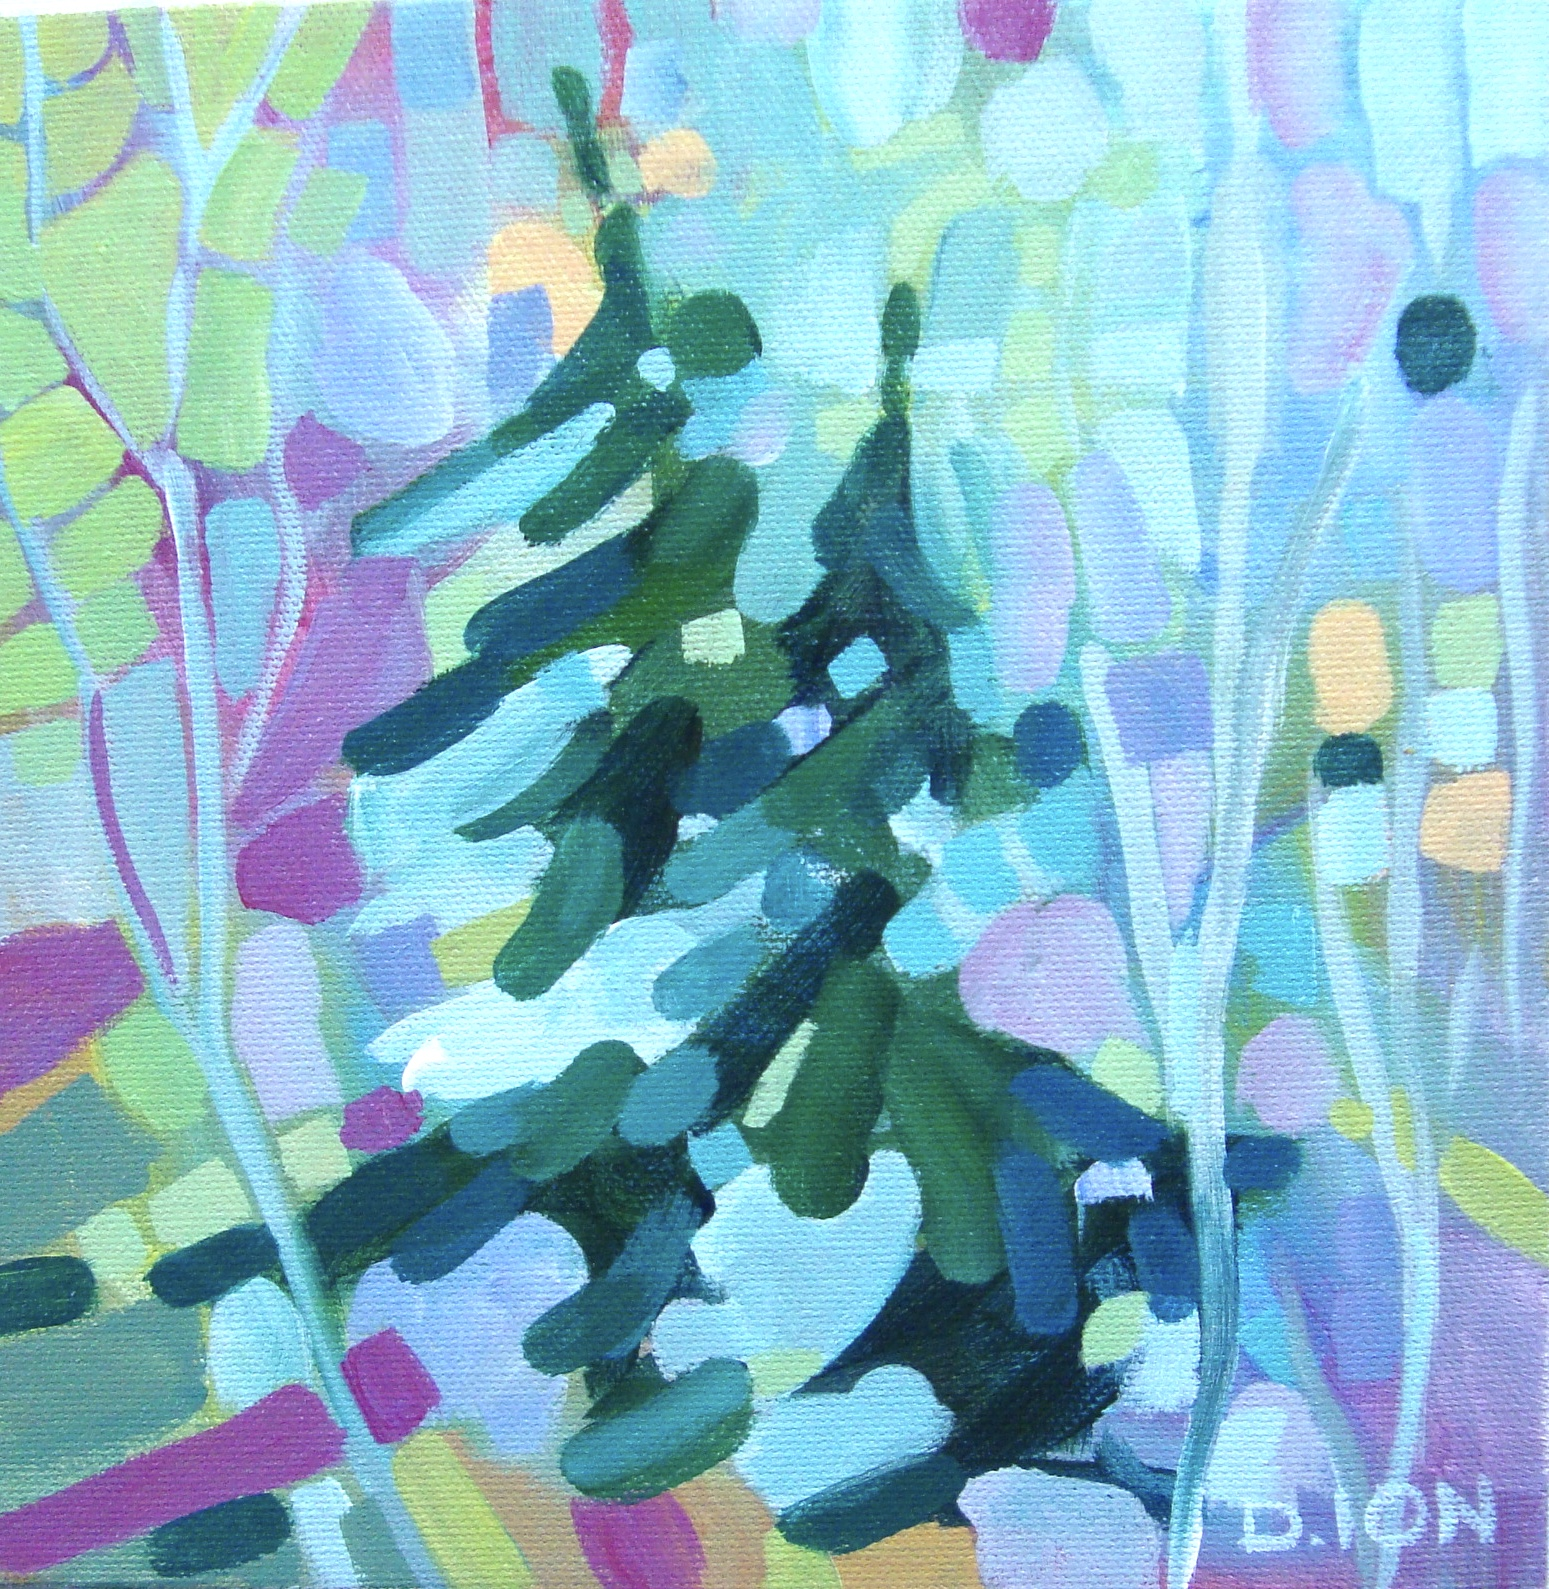 Forest Series 11 8x8 in.